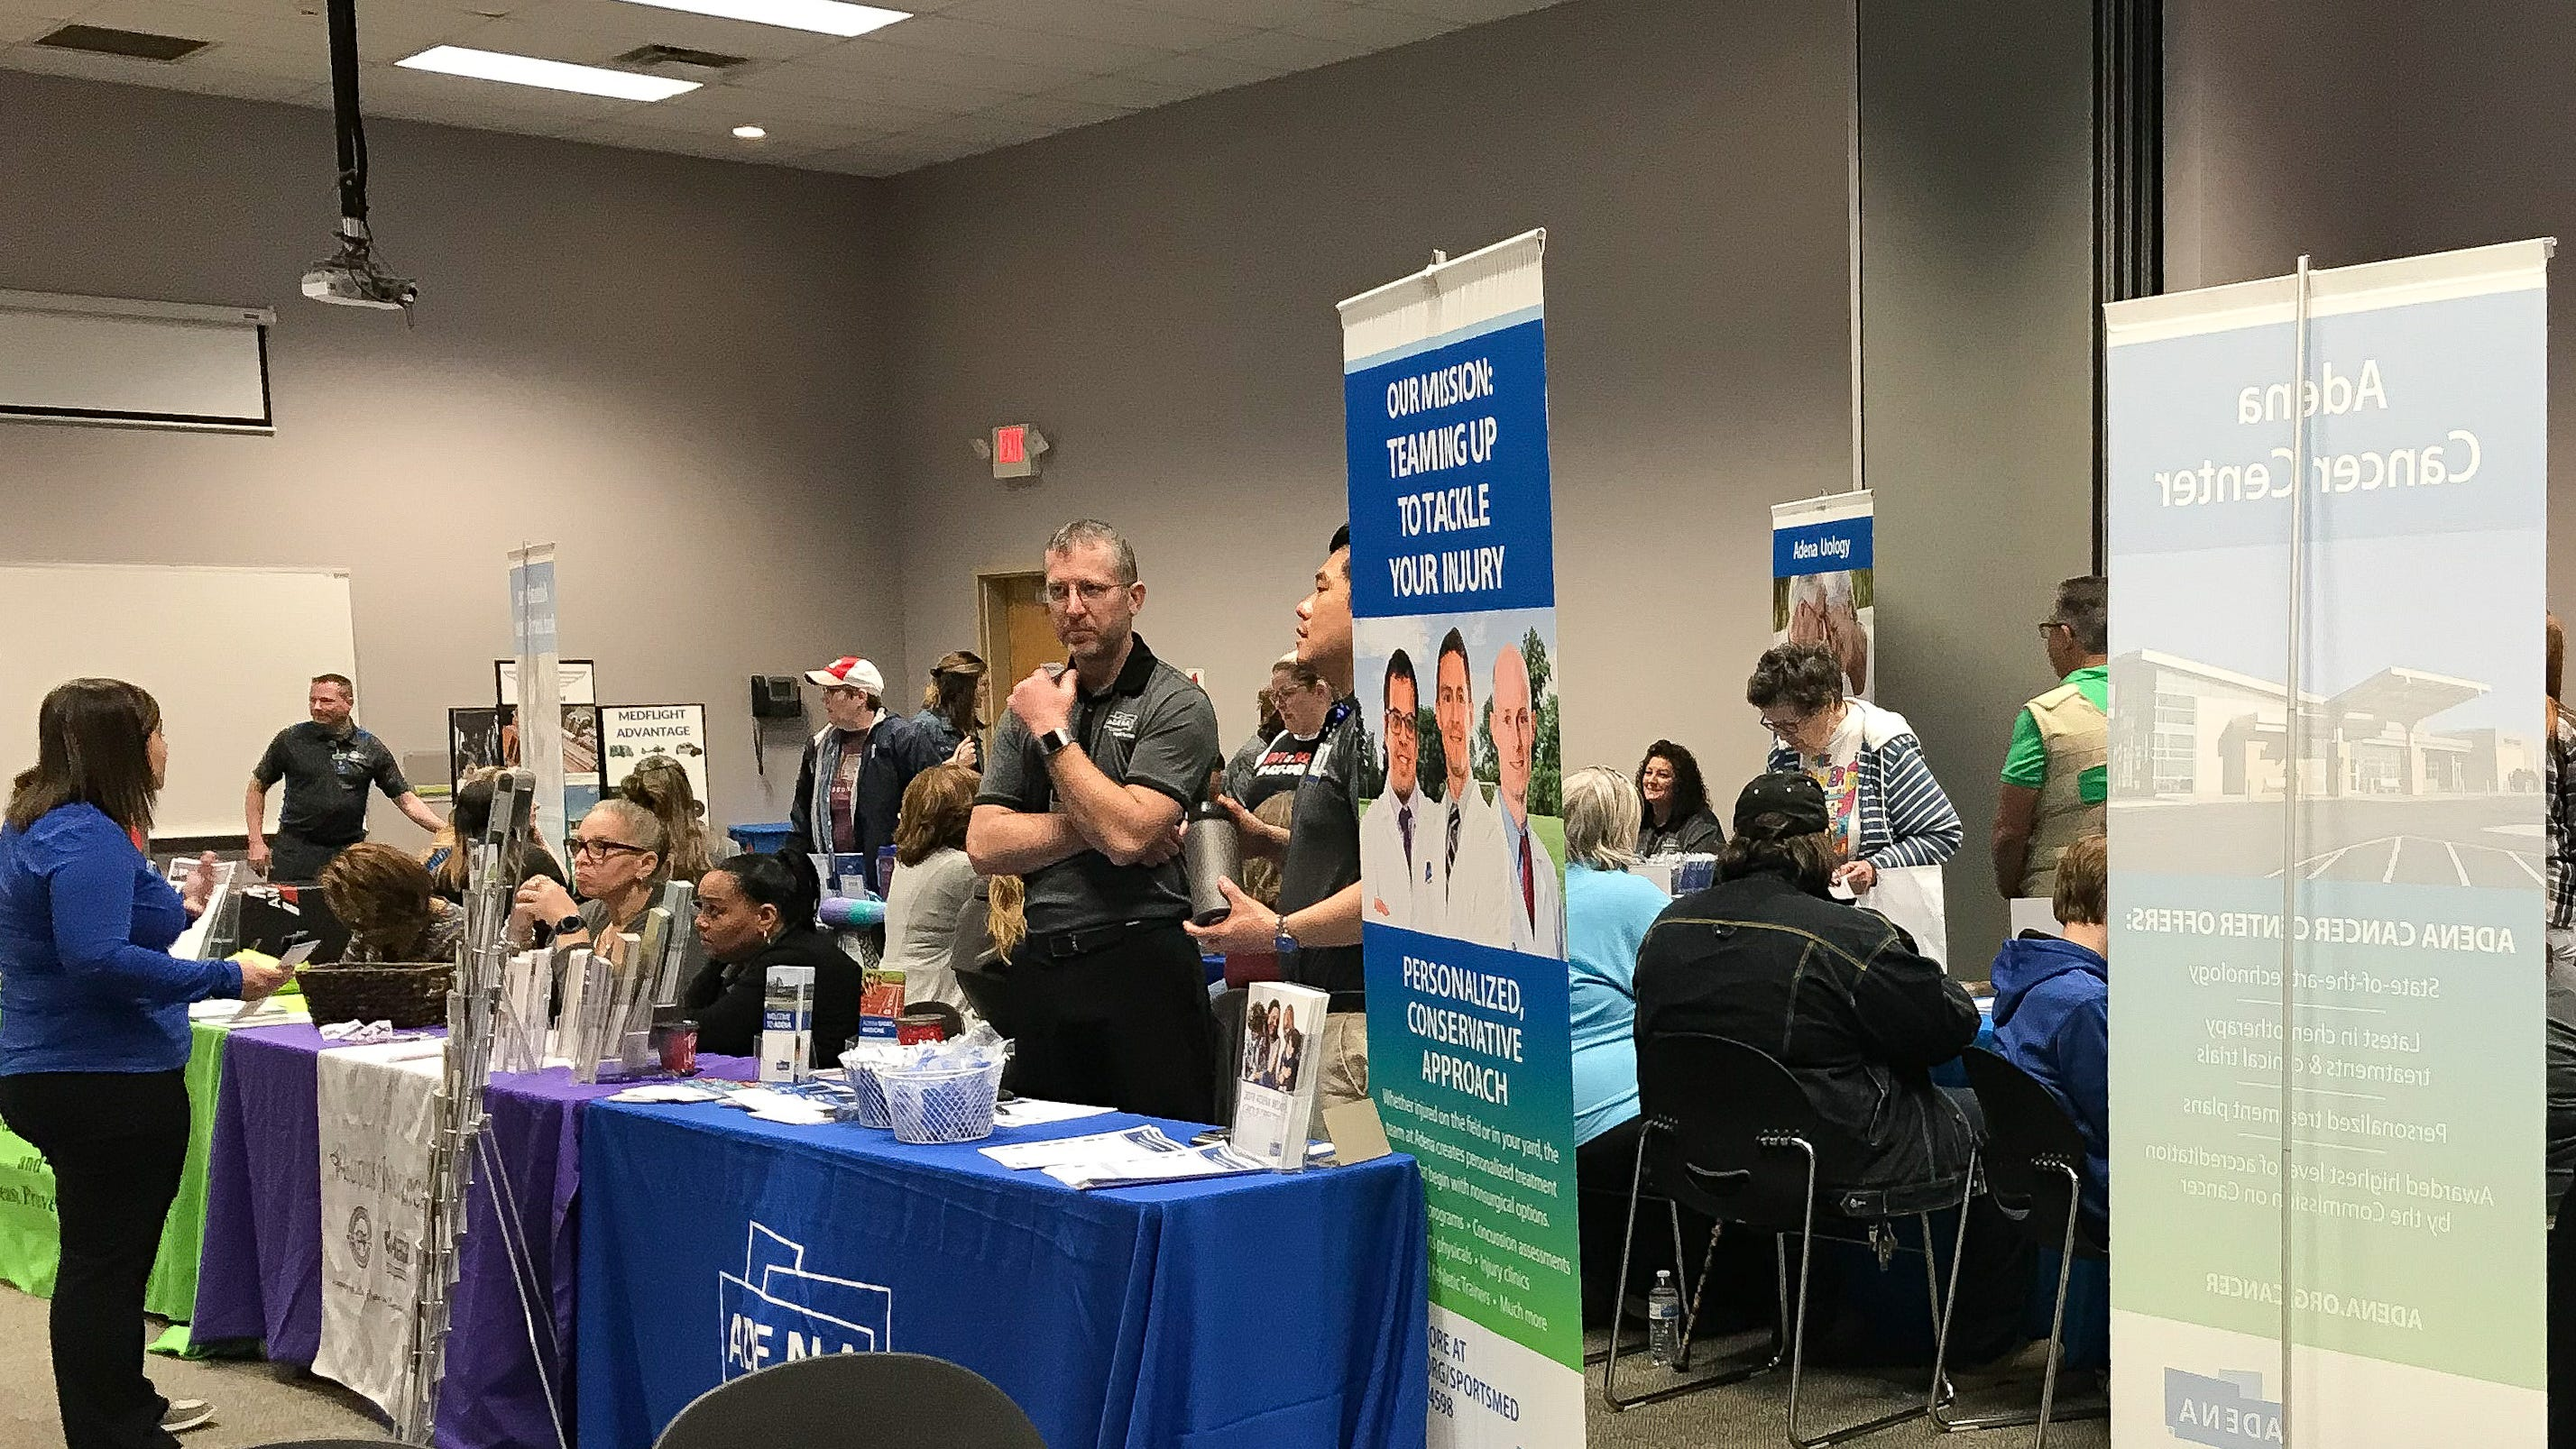 Vendors provided free education and services to community members on Saturday, March 23 at the 15th Annual Health, Safety and Fitness Expo.